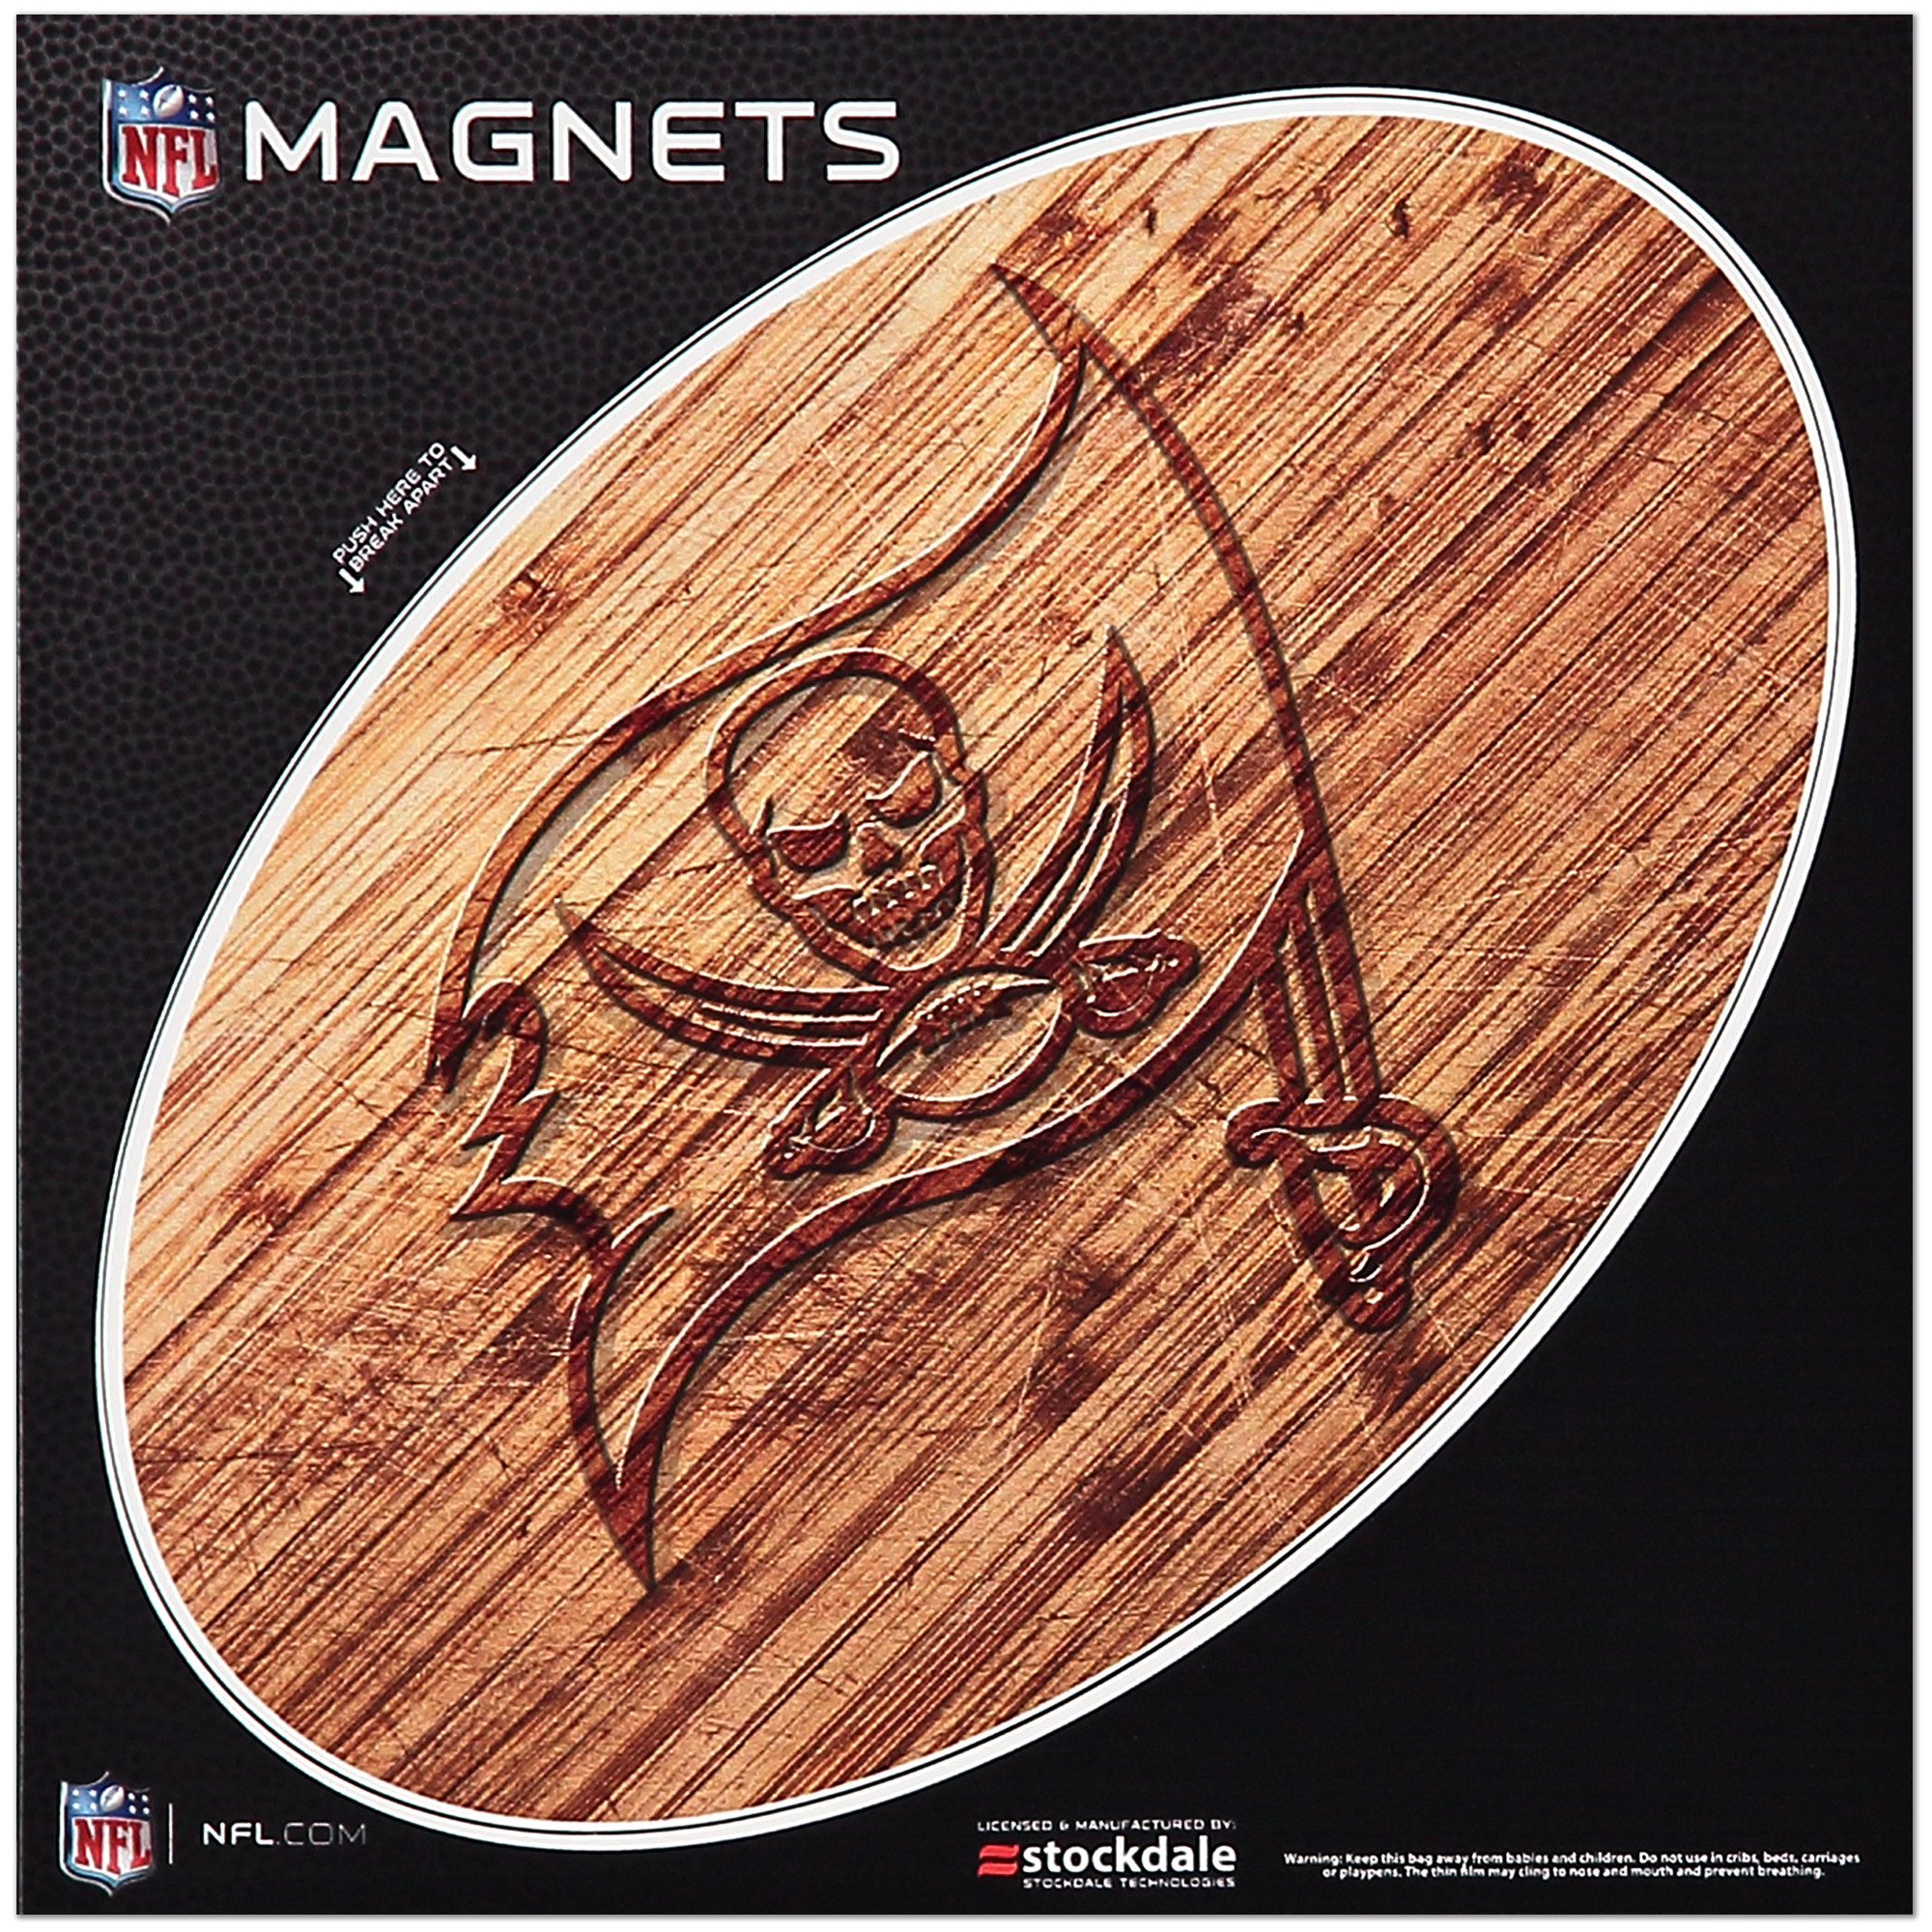 Tampa Bay Buccaneers 6 x 6 Wood Design Magnet - No Size